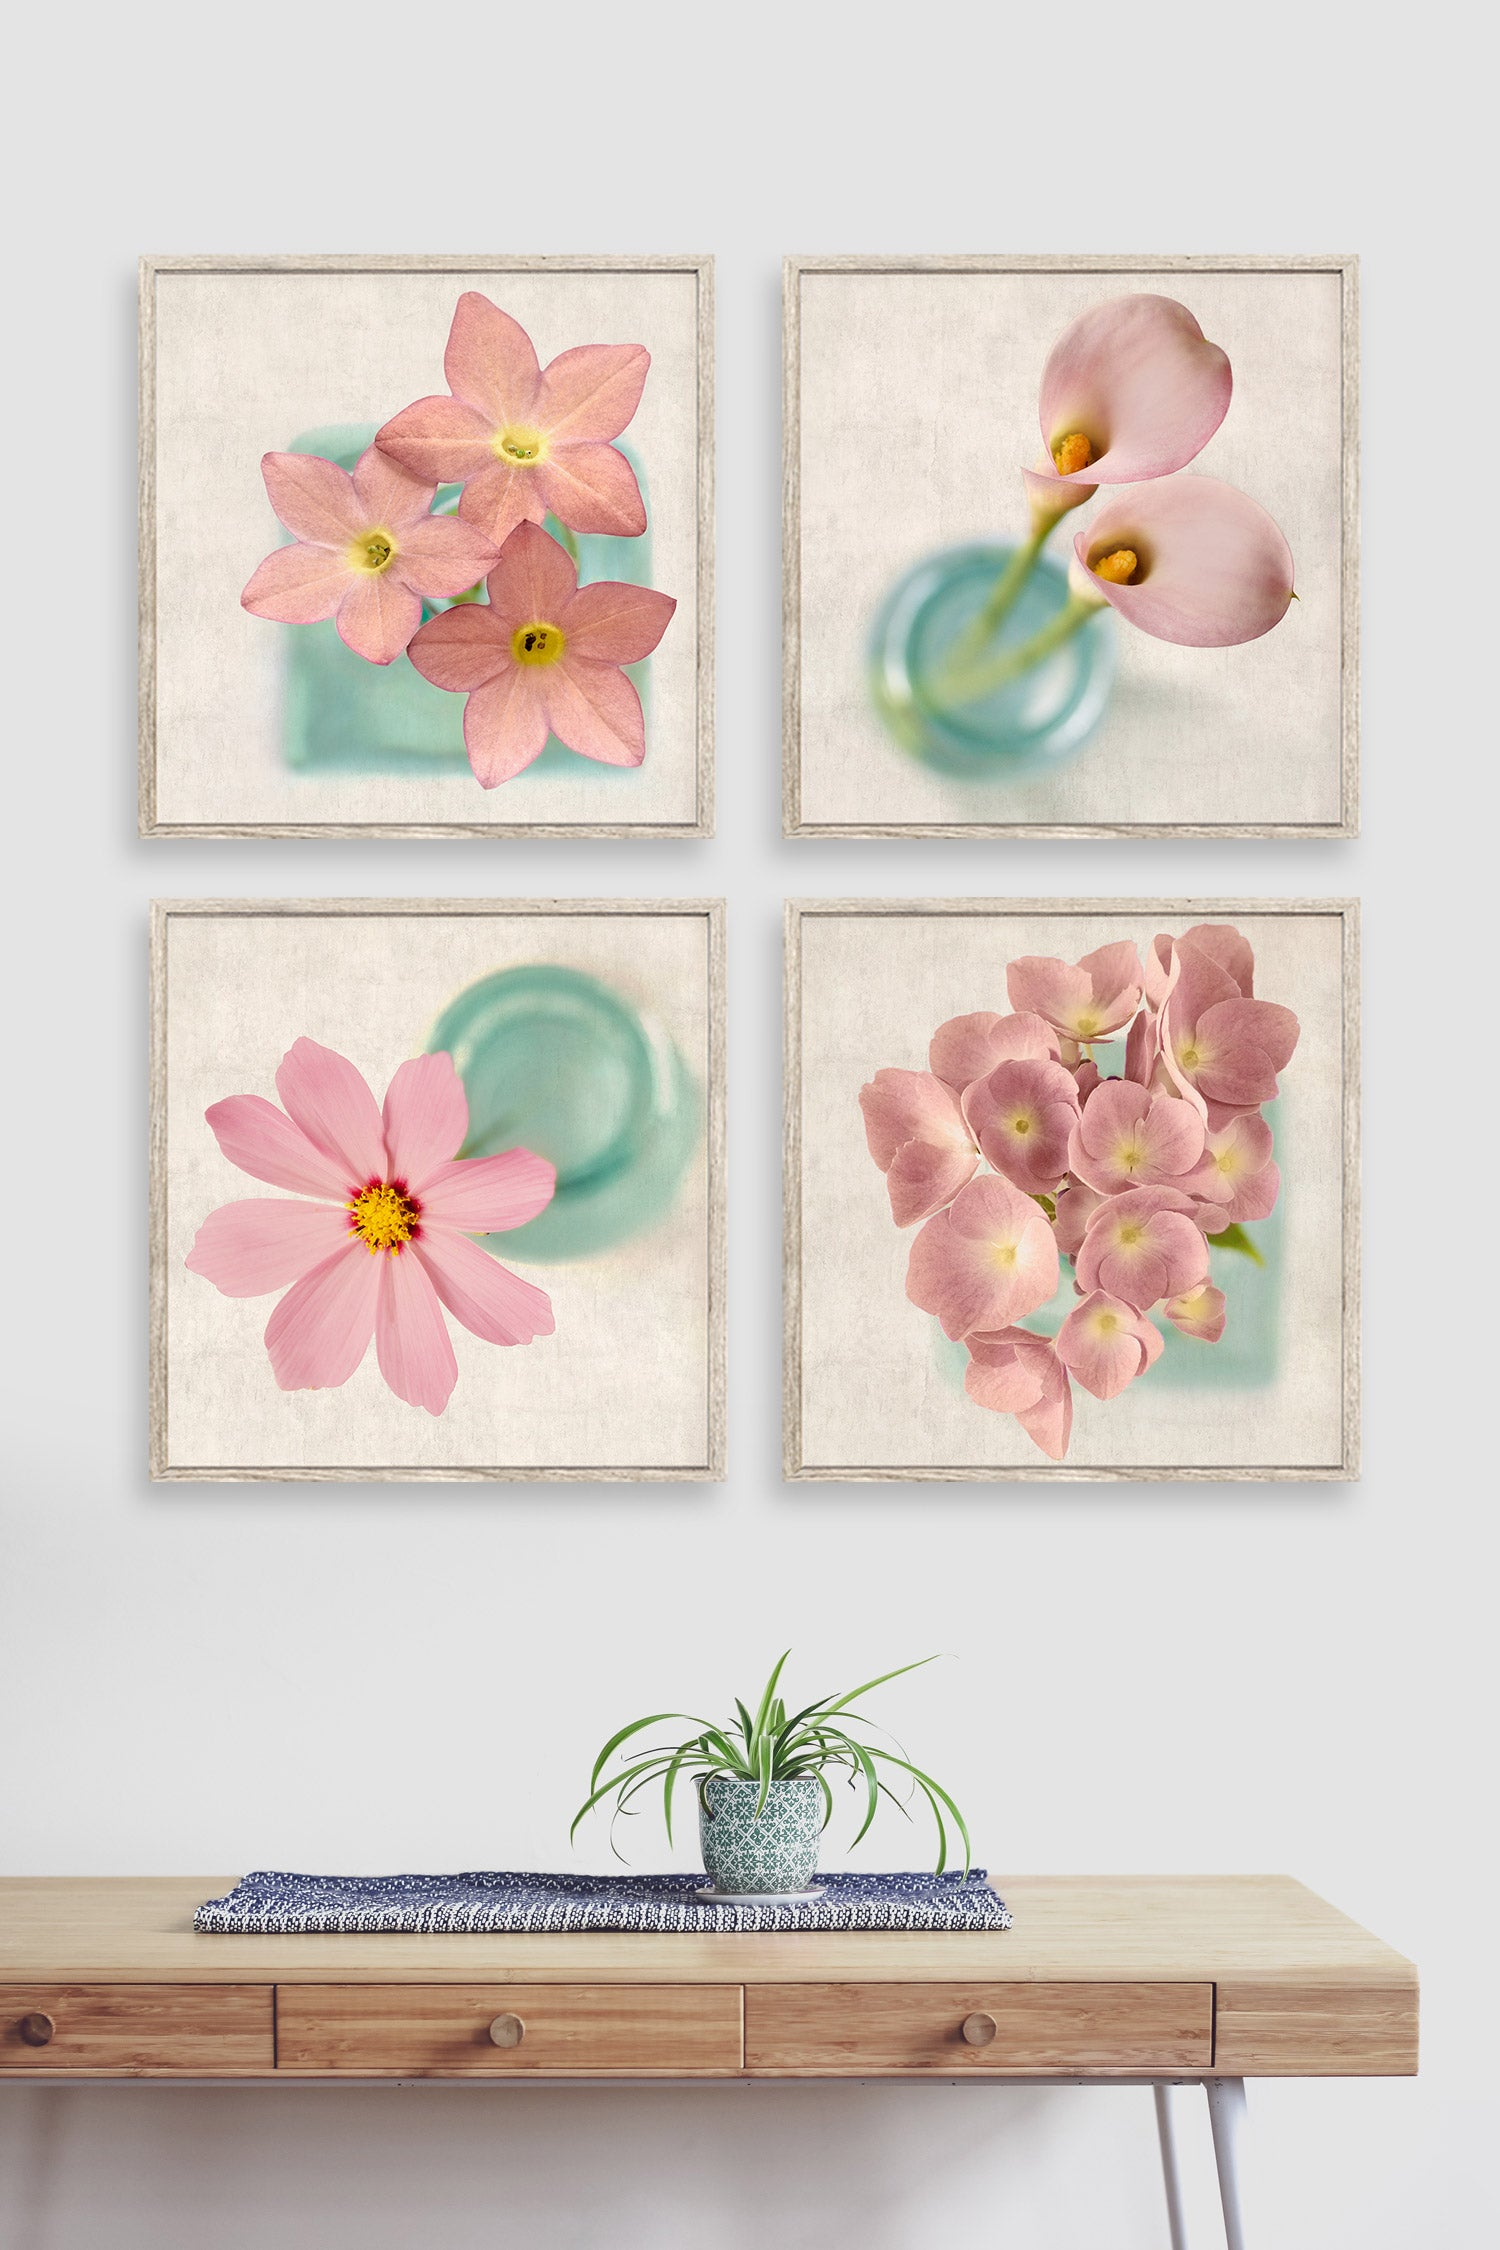 Set of 4 prints of pink florals